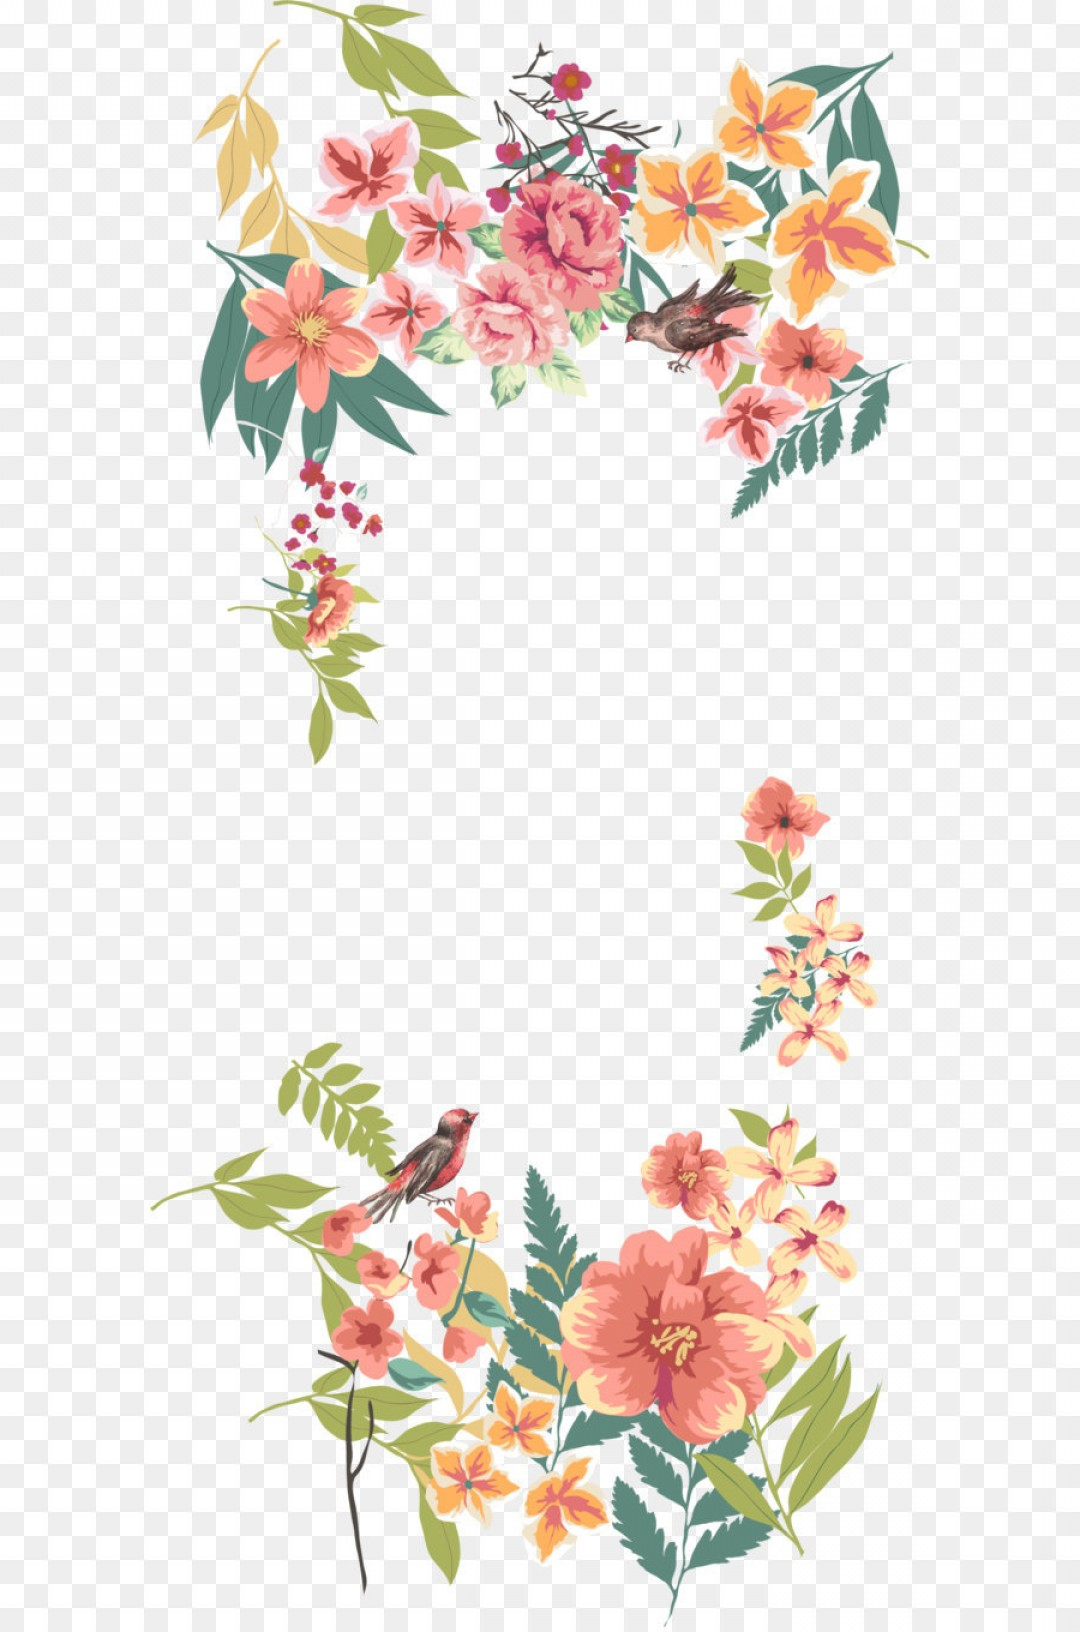 Vector Design Png At Getdrawings Com Free For Personal Use Vector